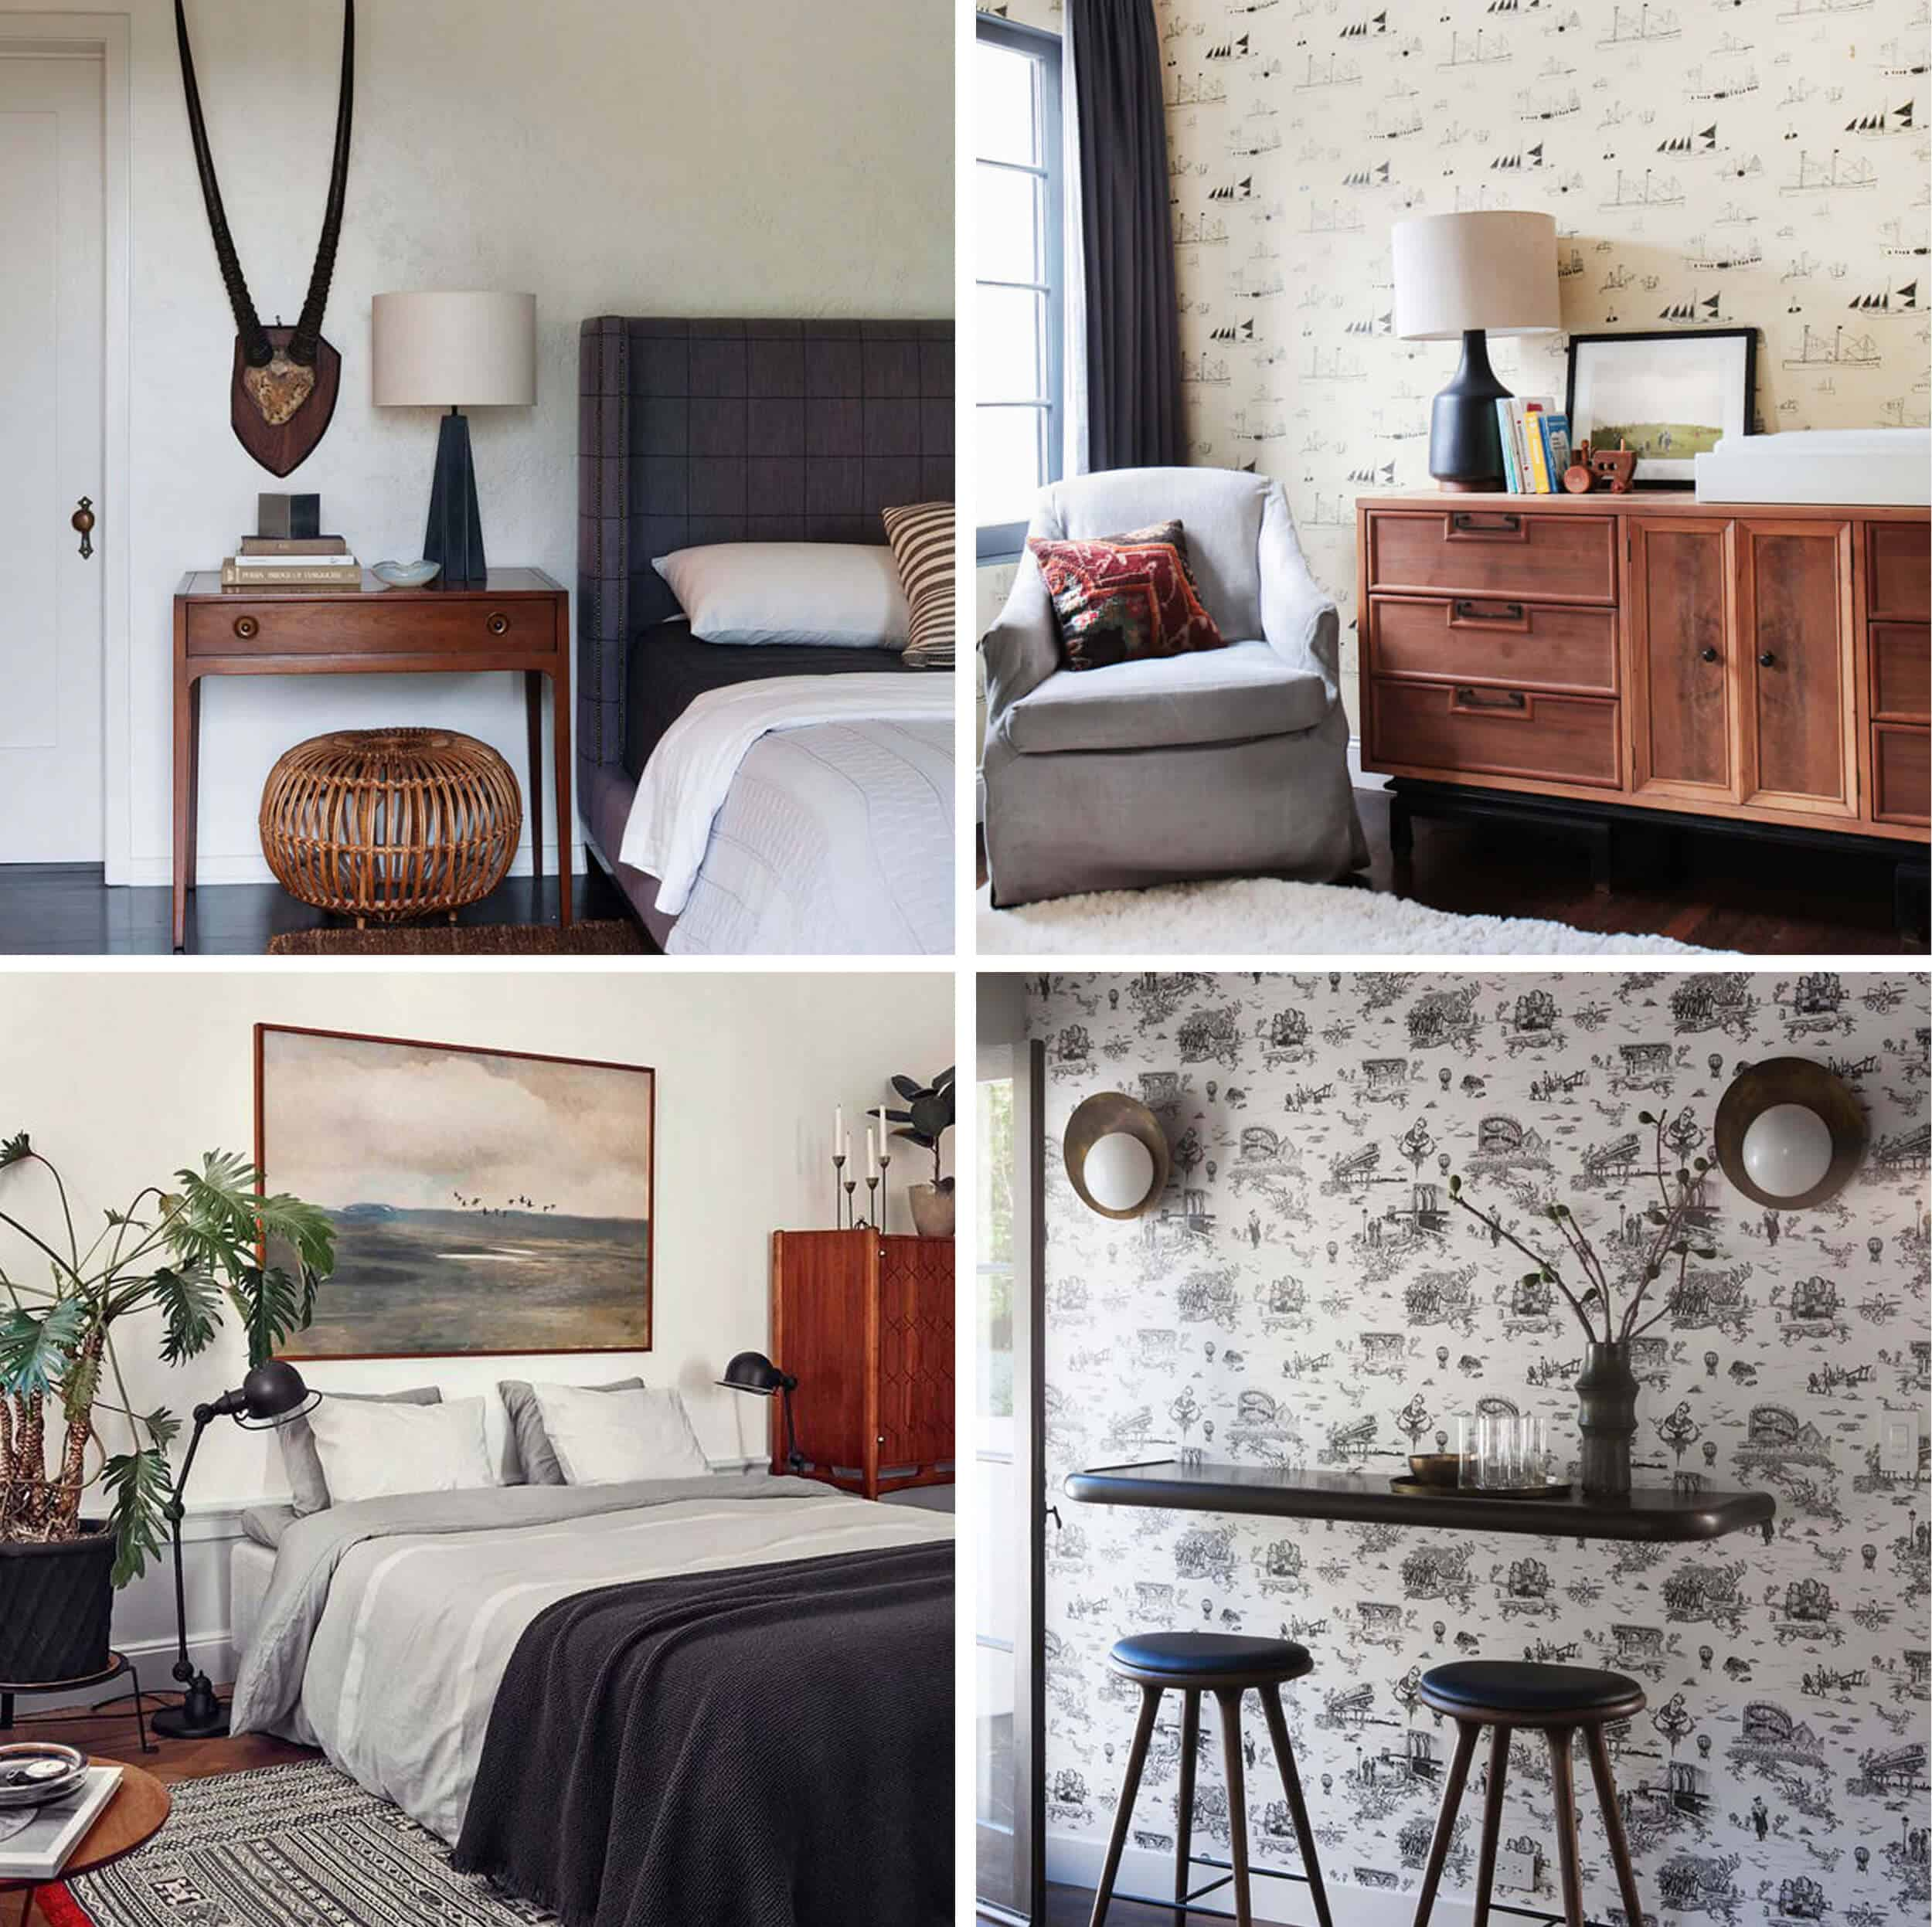 Emily Henderson_Guest Bedroom_Traditional_Modern_Dark_Eclectic_Black_Inspiration_Photos